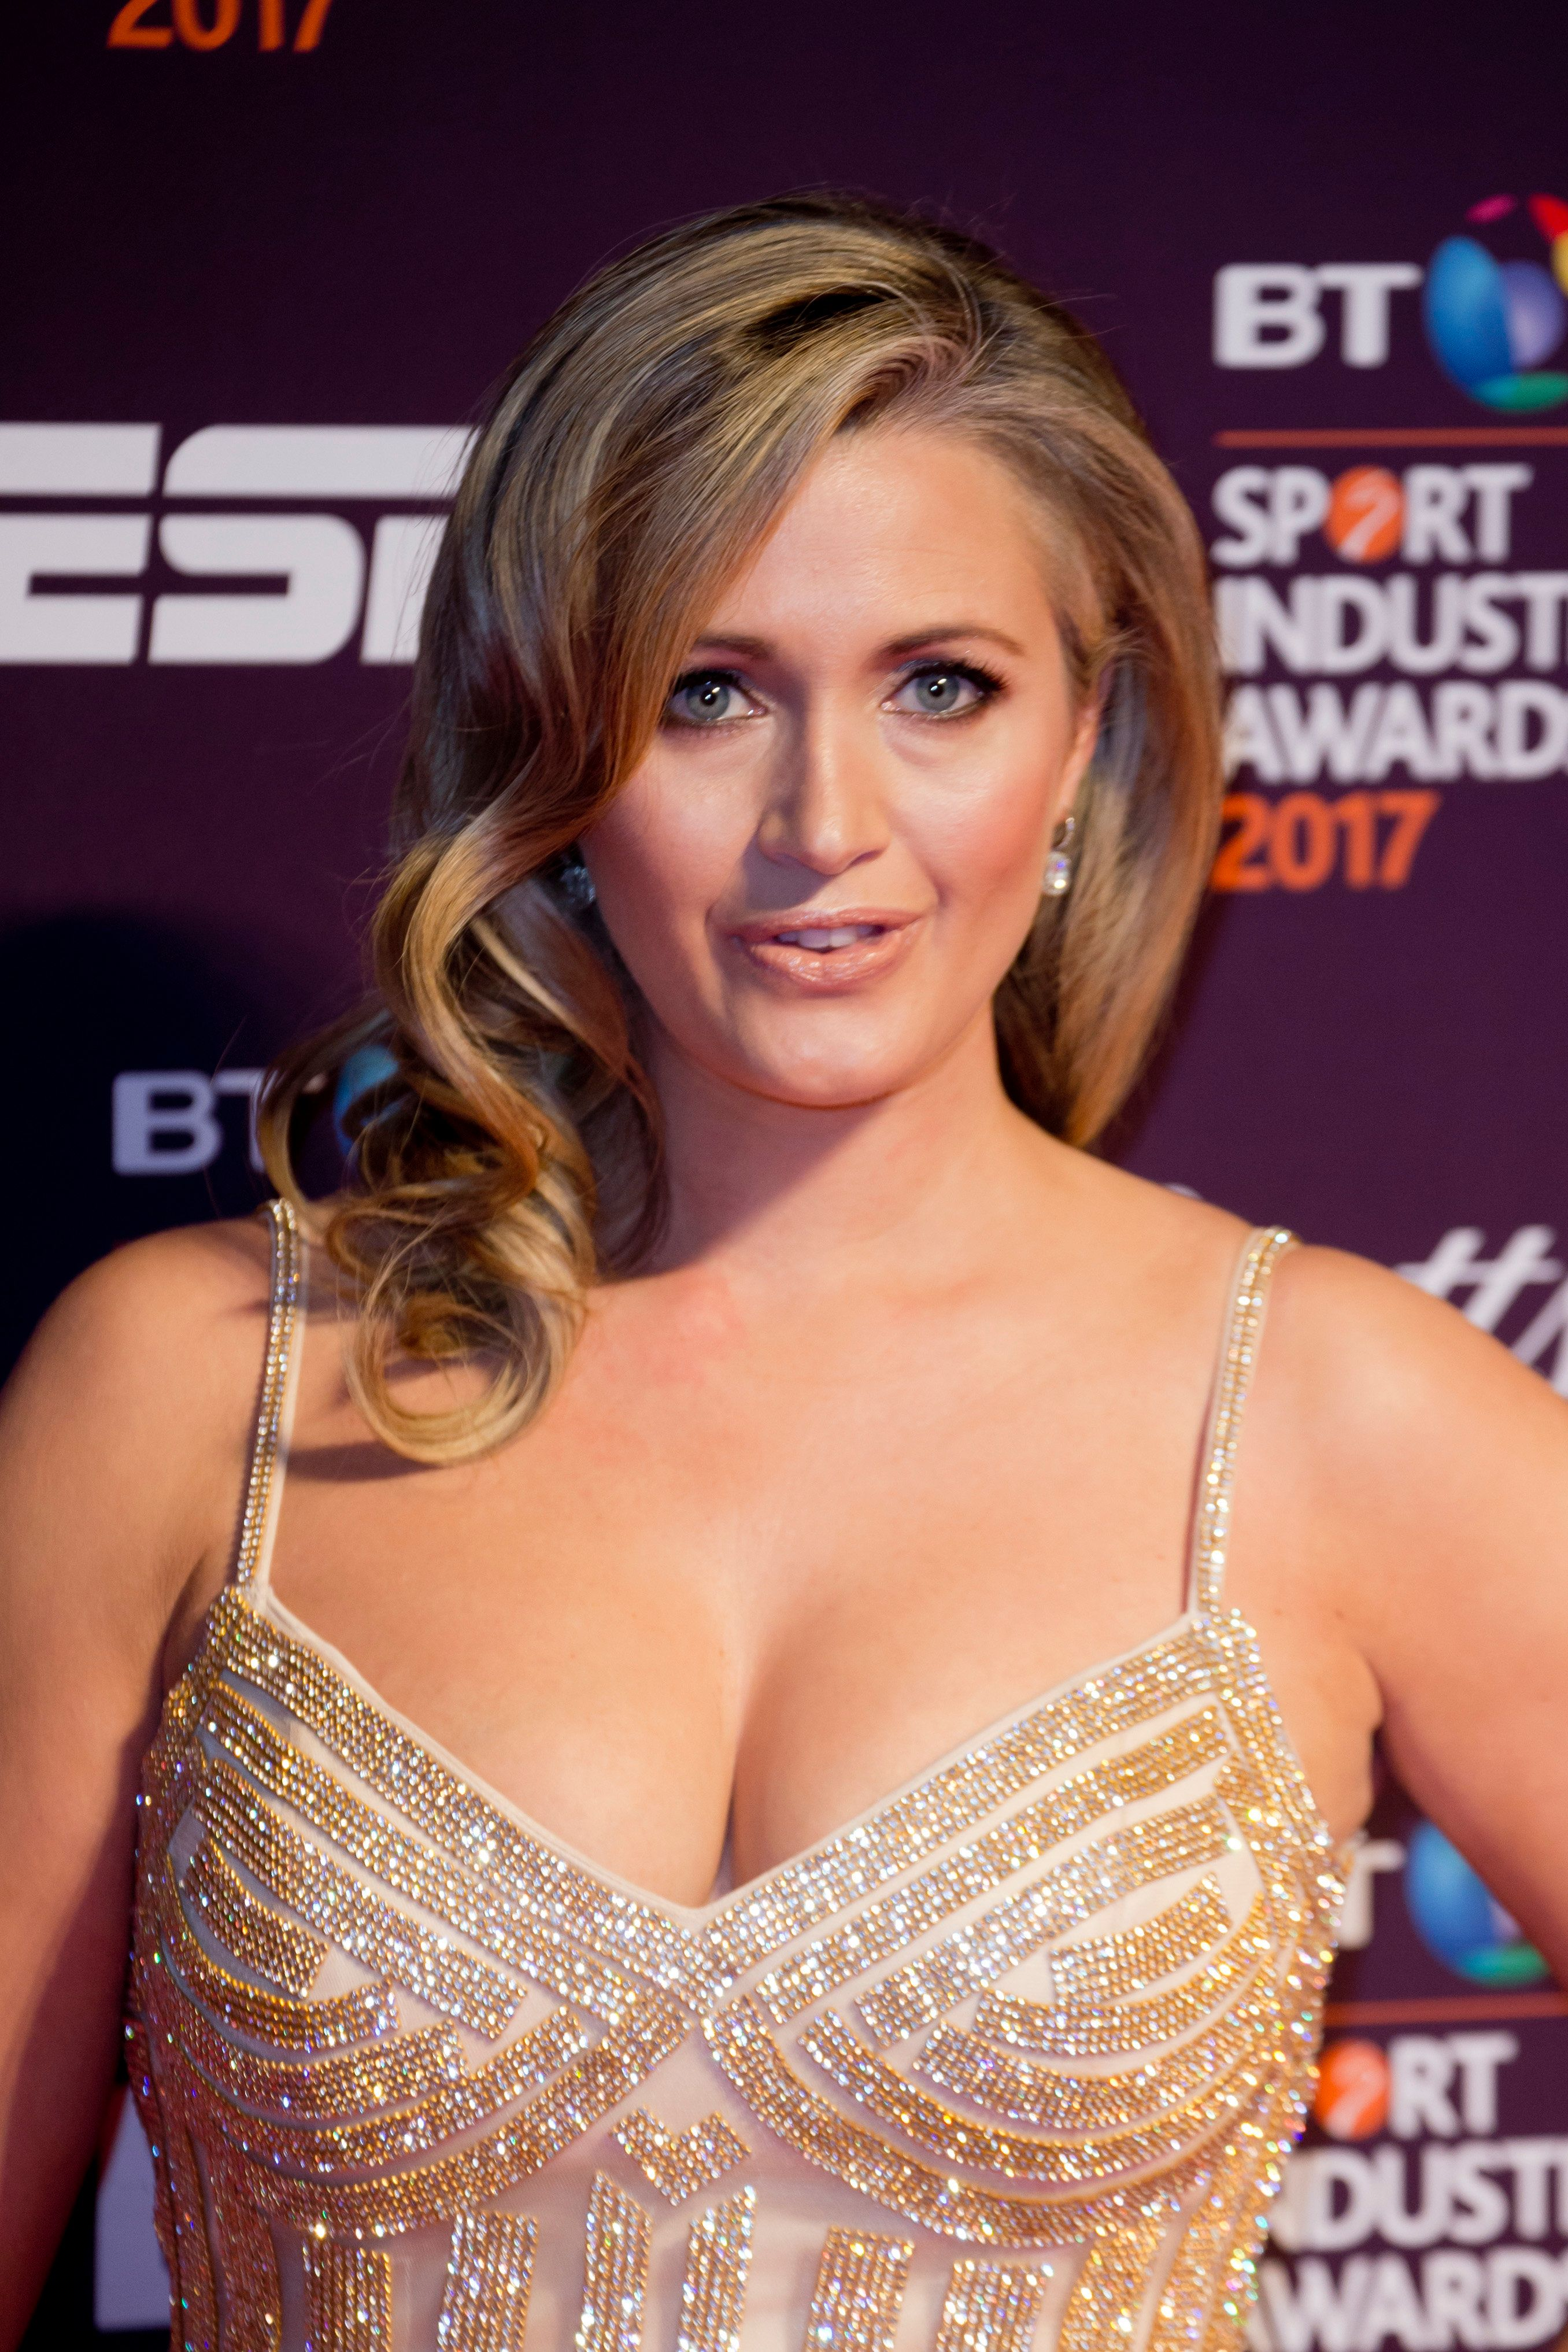 Sky Sports' Hayley McQueen Says Female Presenters 'Have To Work Twice As Hard' As She Addresses